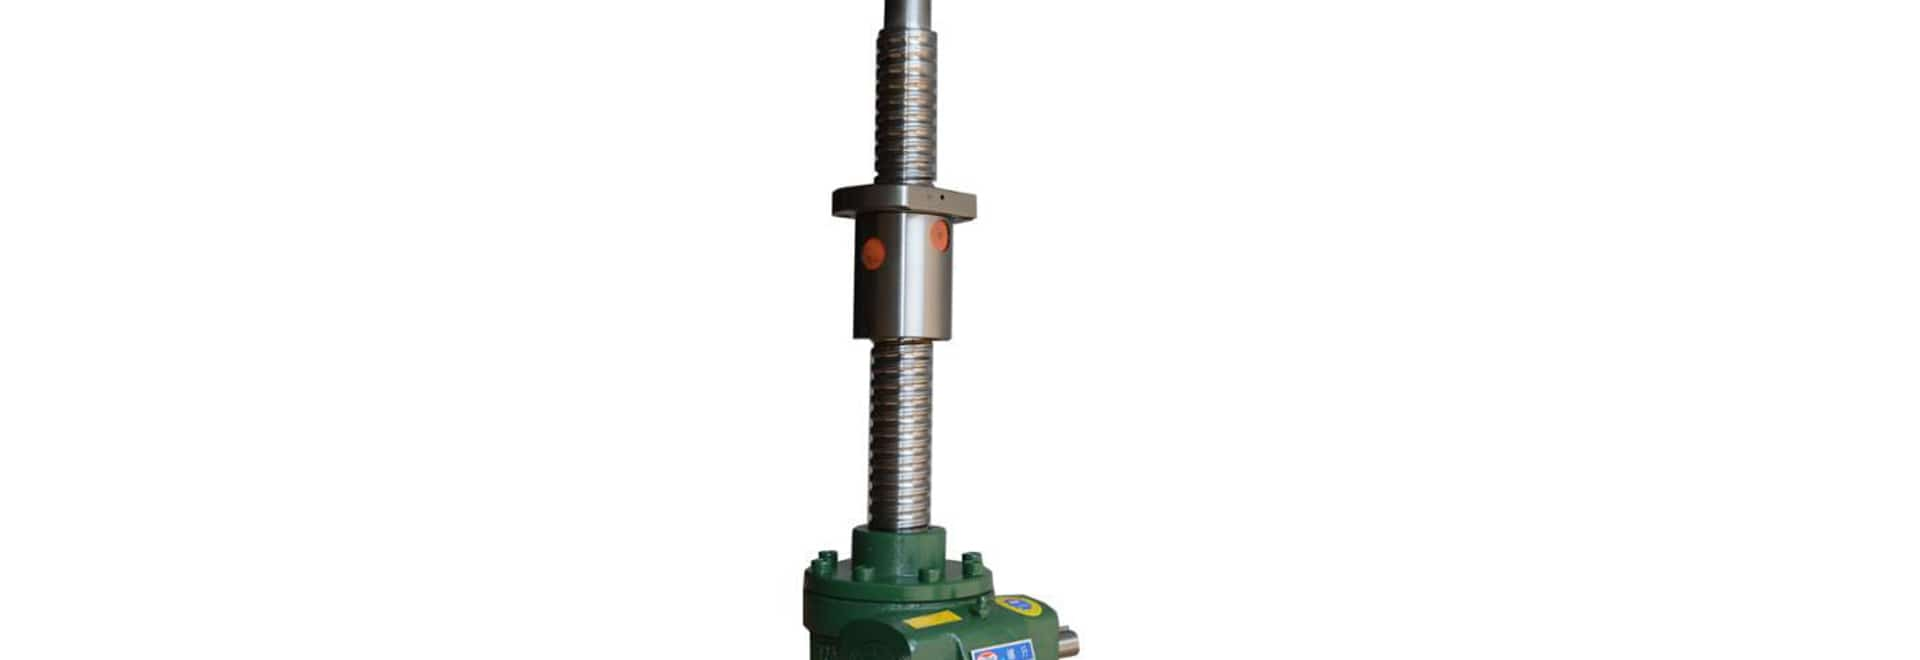 About Ball Screw Jack